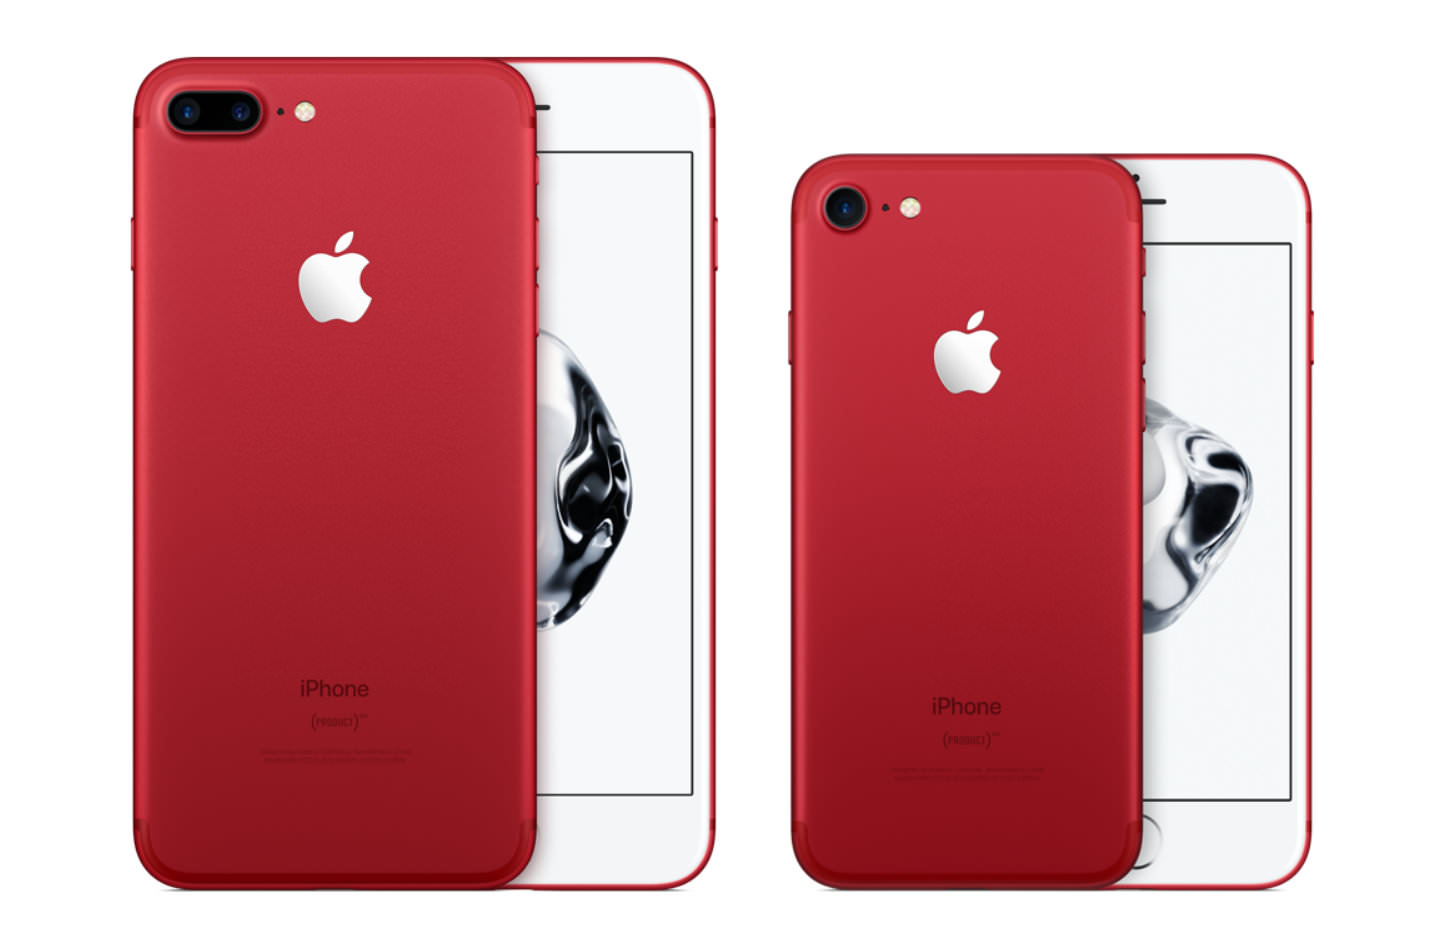 Iphone red model in proper colors